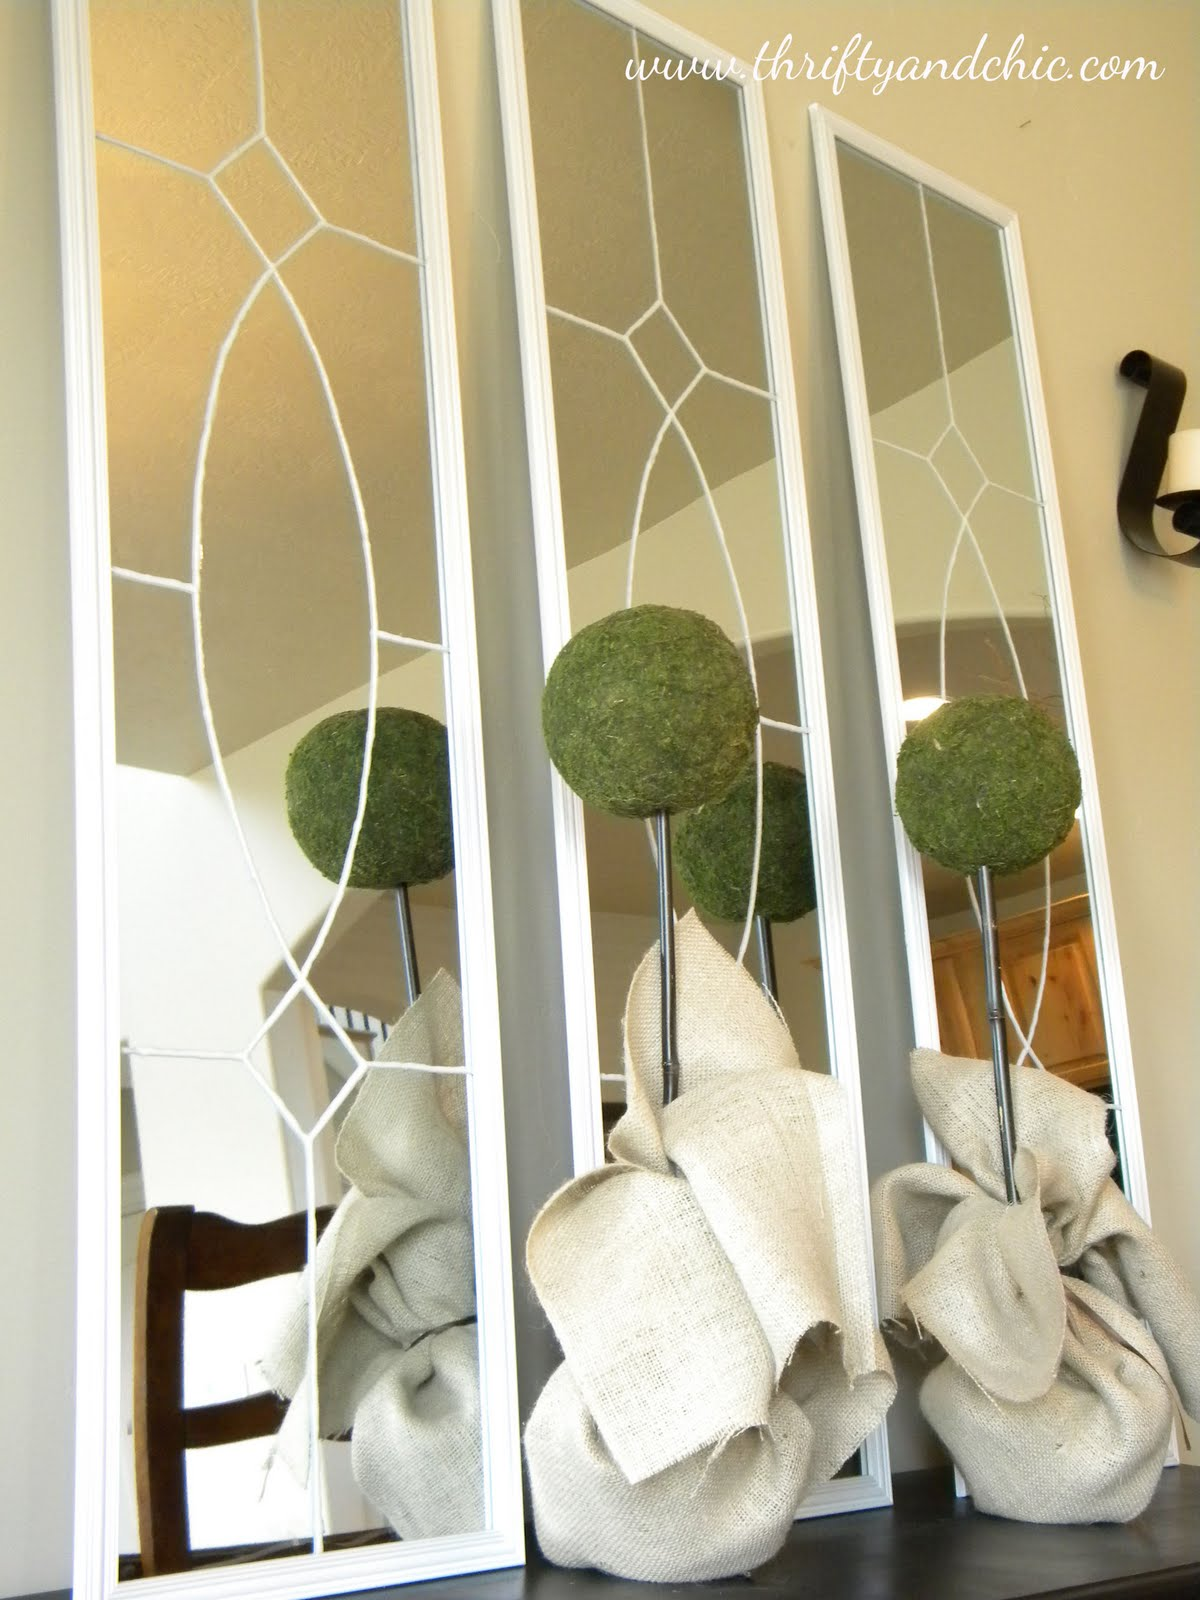 Diy Knock Off Shelves: DIY Projects And Home Decor